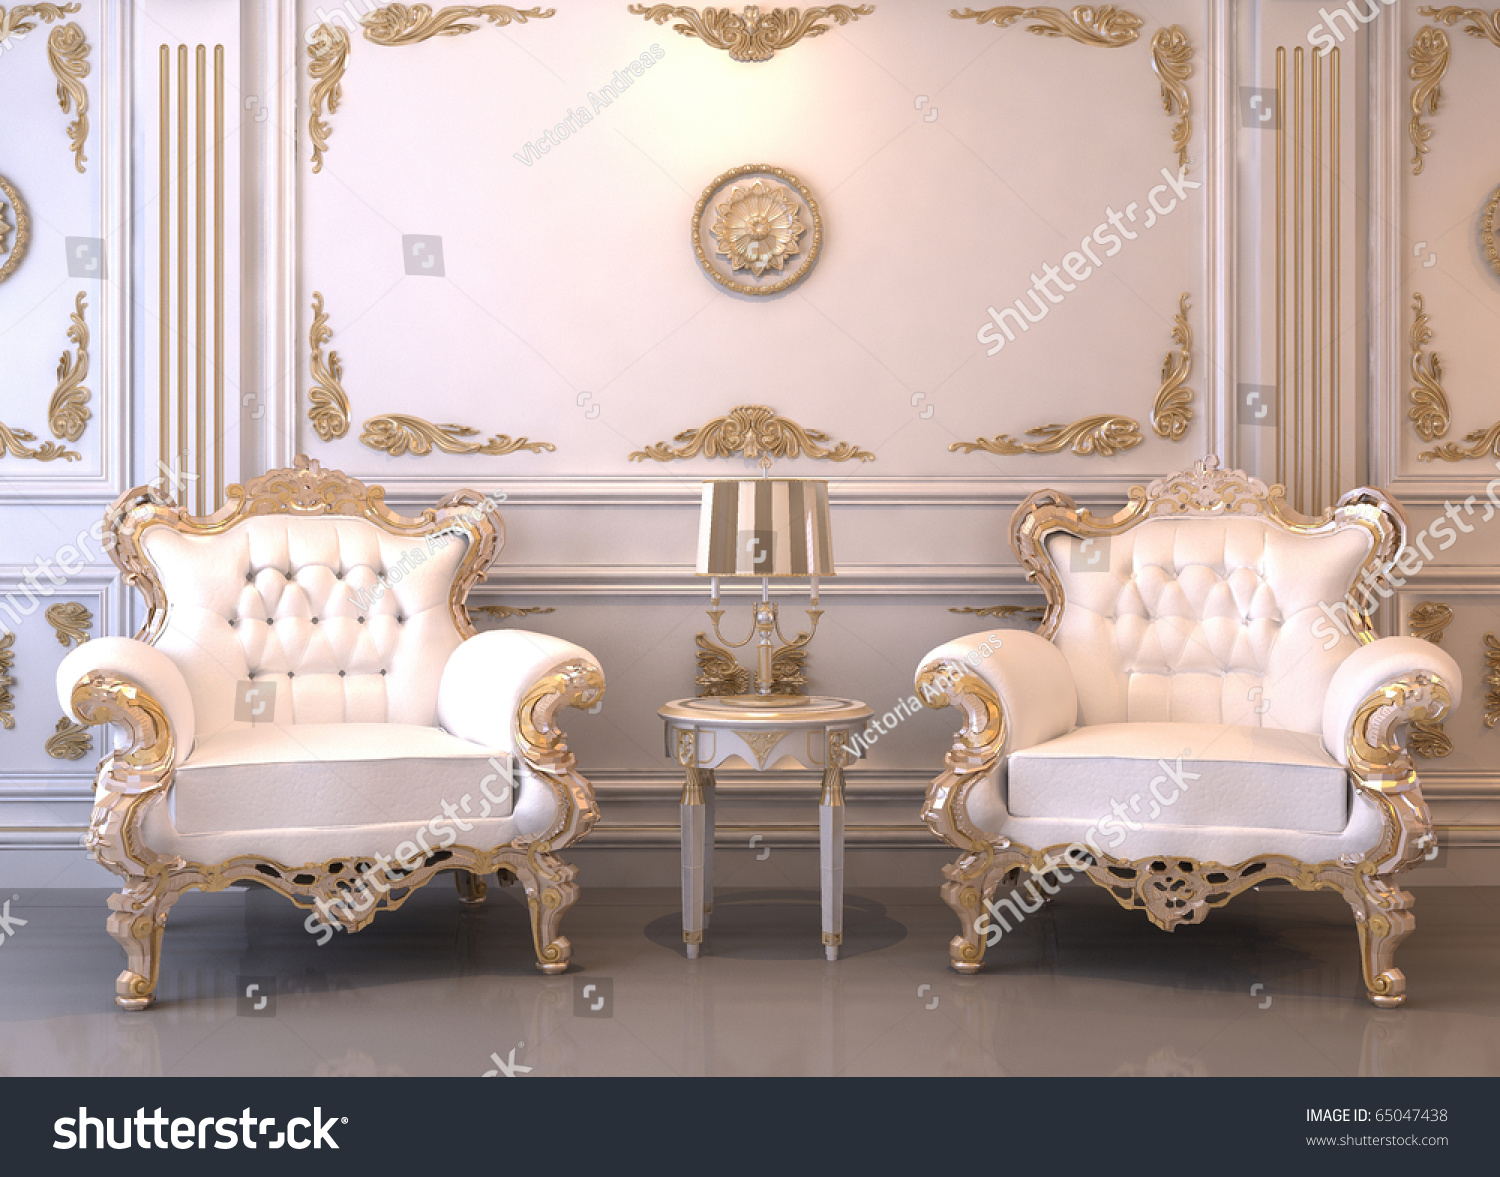 royal furniture in luxury interior stock photo 65047438 shutterstock. Black Bedroom Furniture Sets. Home Design Ideas